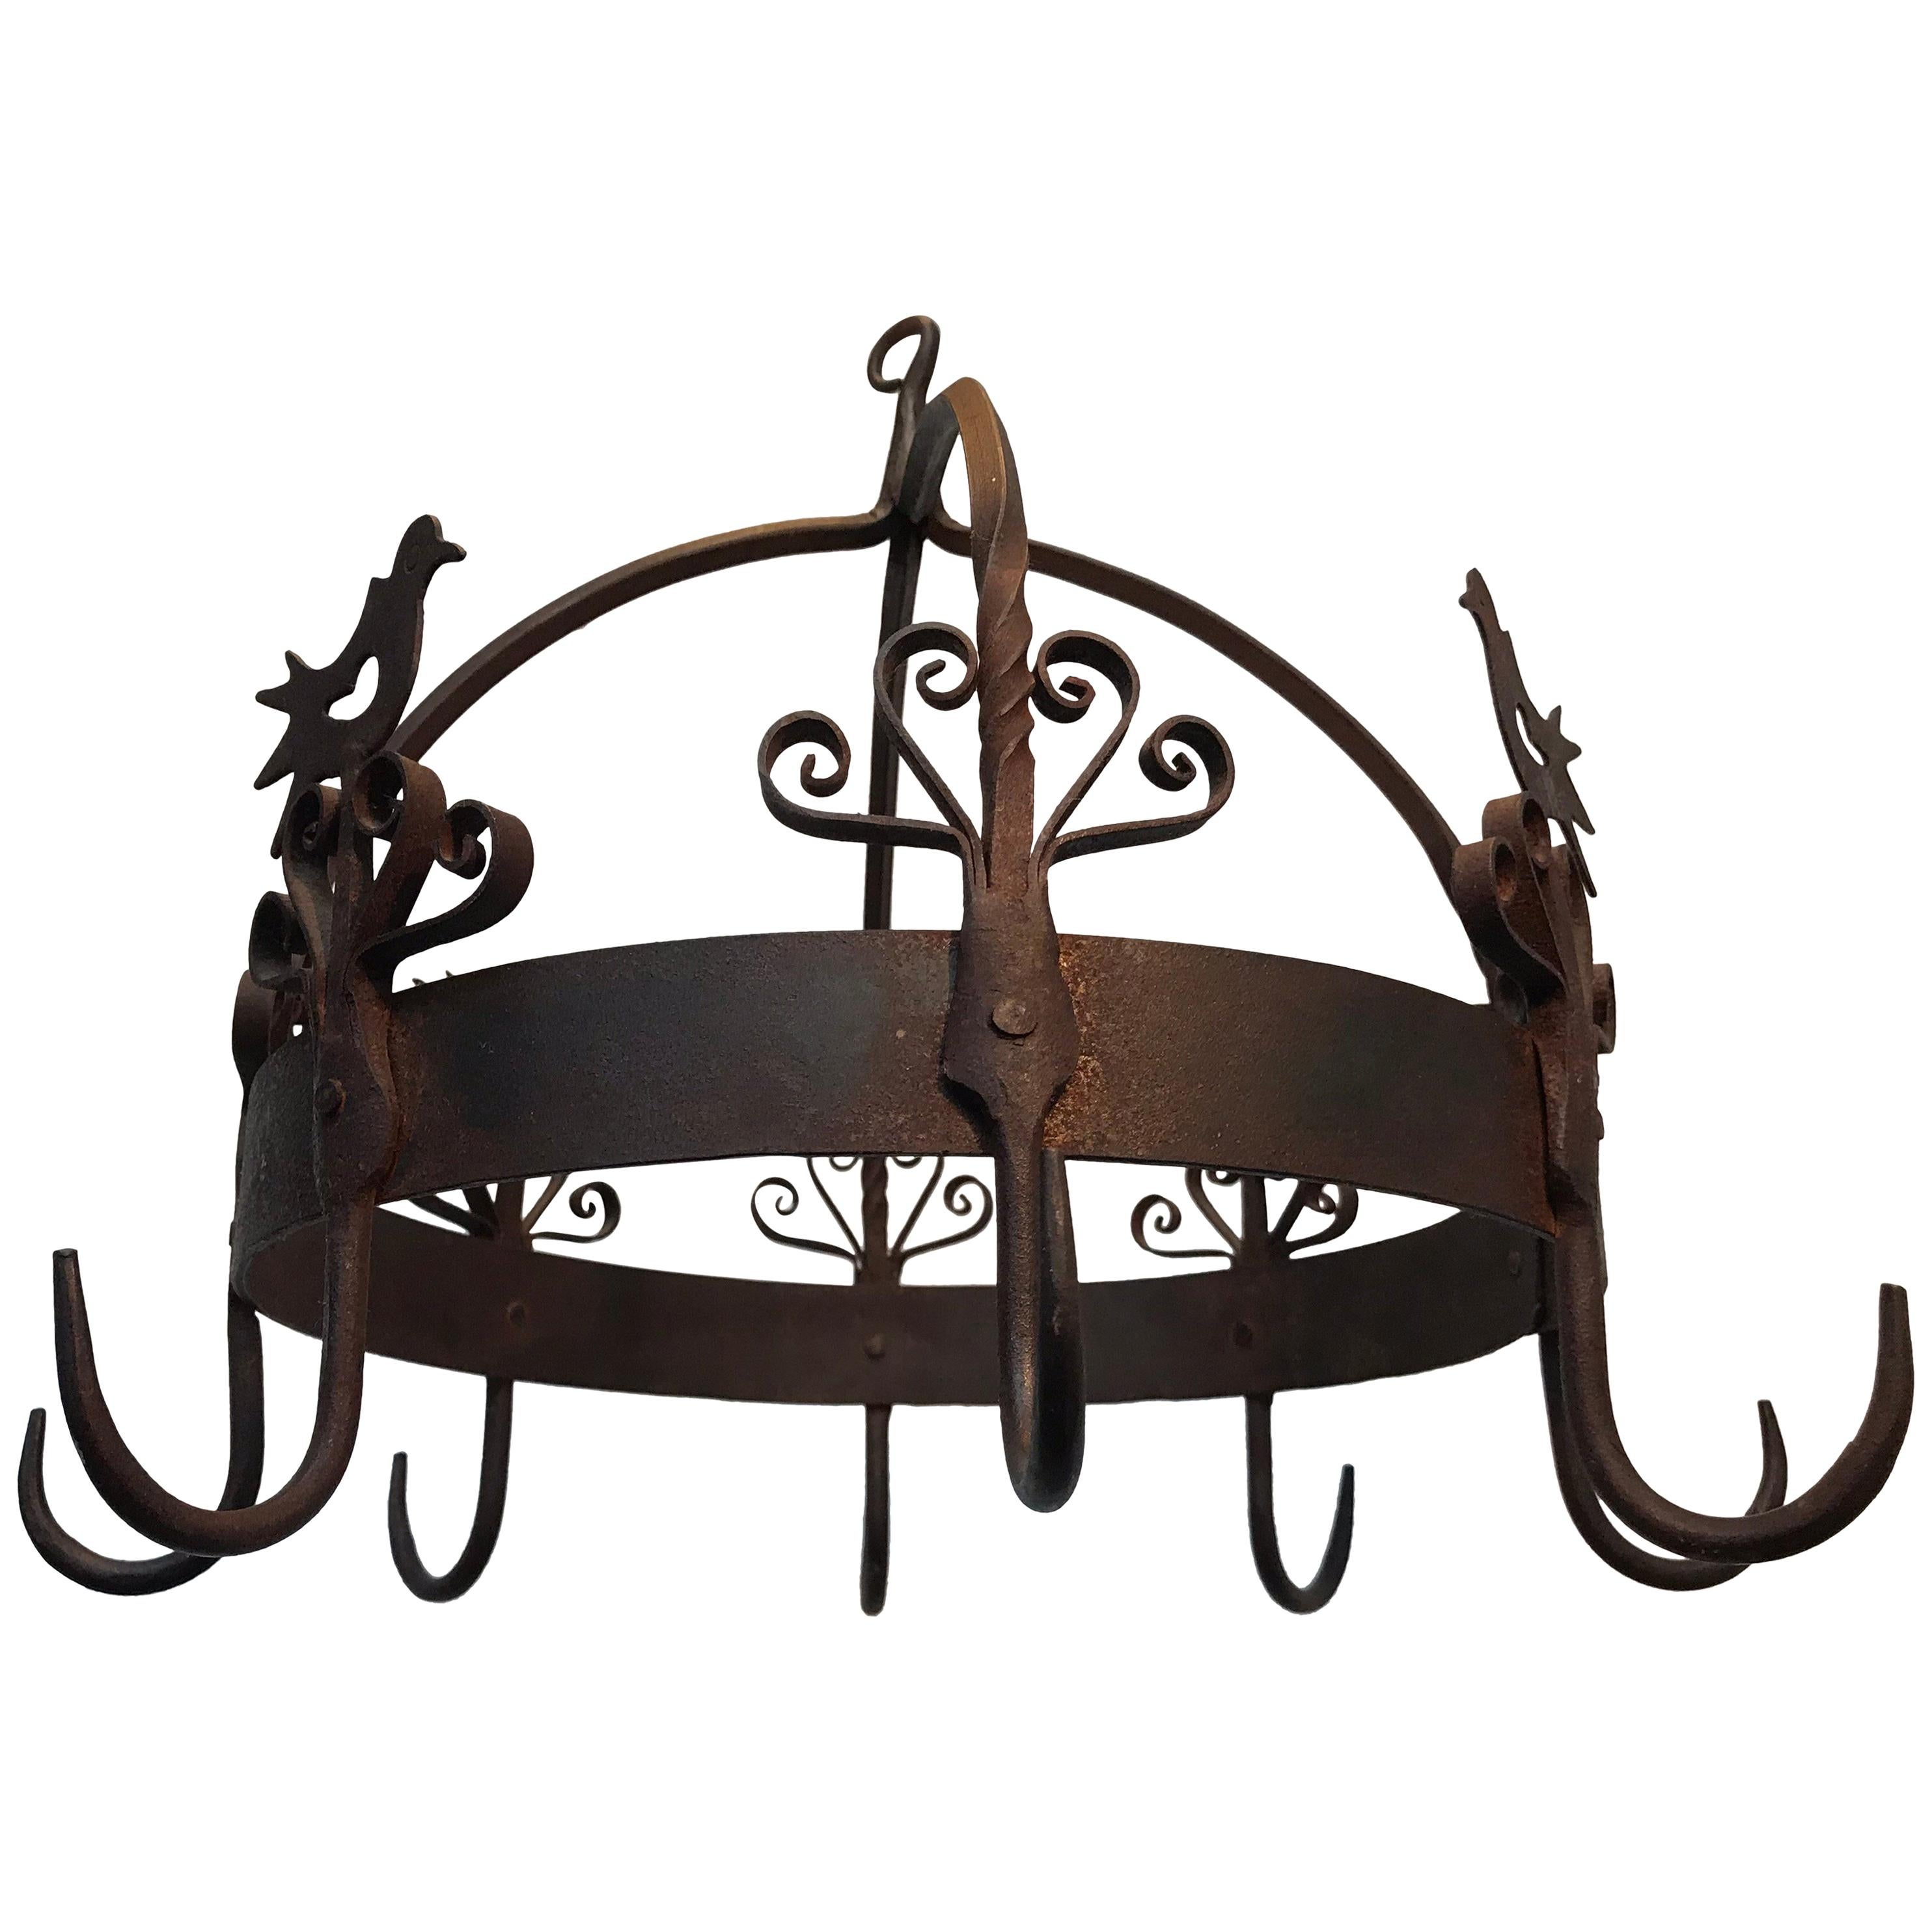 19th Century Antique Forged Iron Game Hook